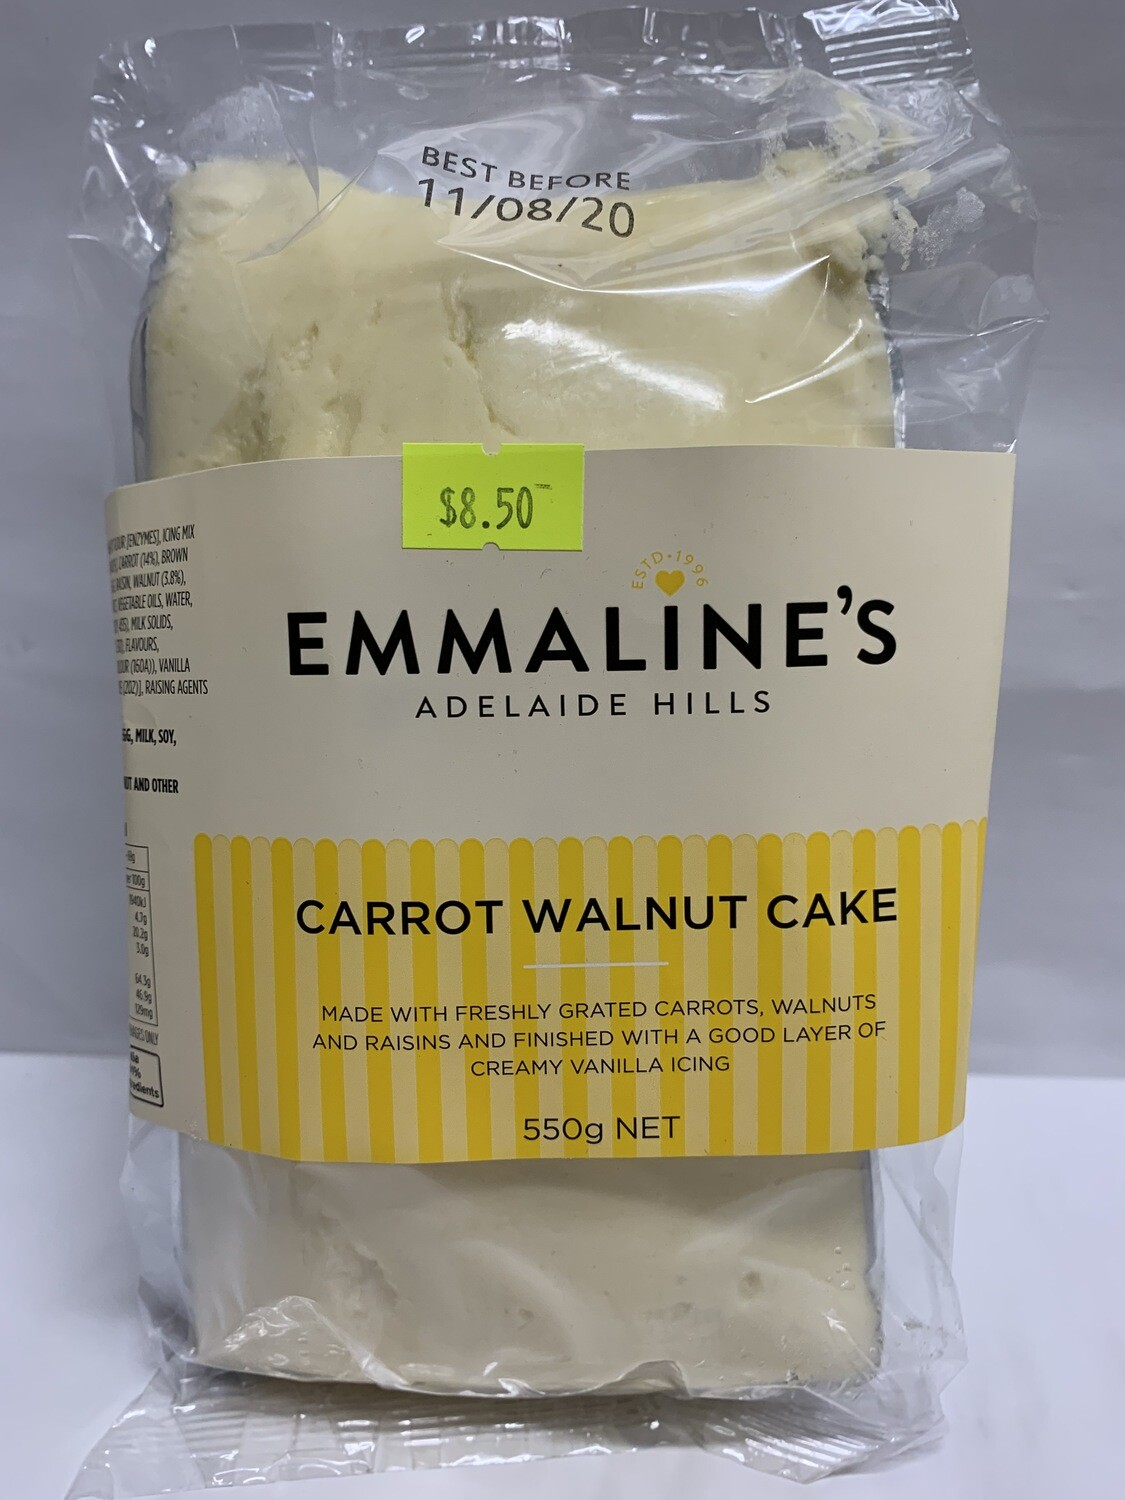 Carrot Walnut Cake (550g)